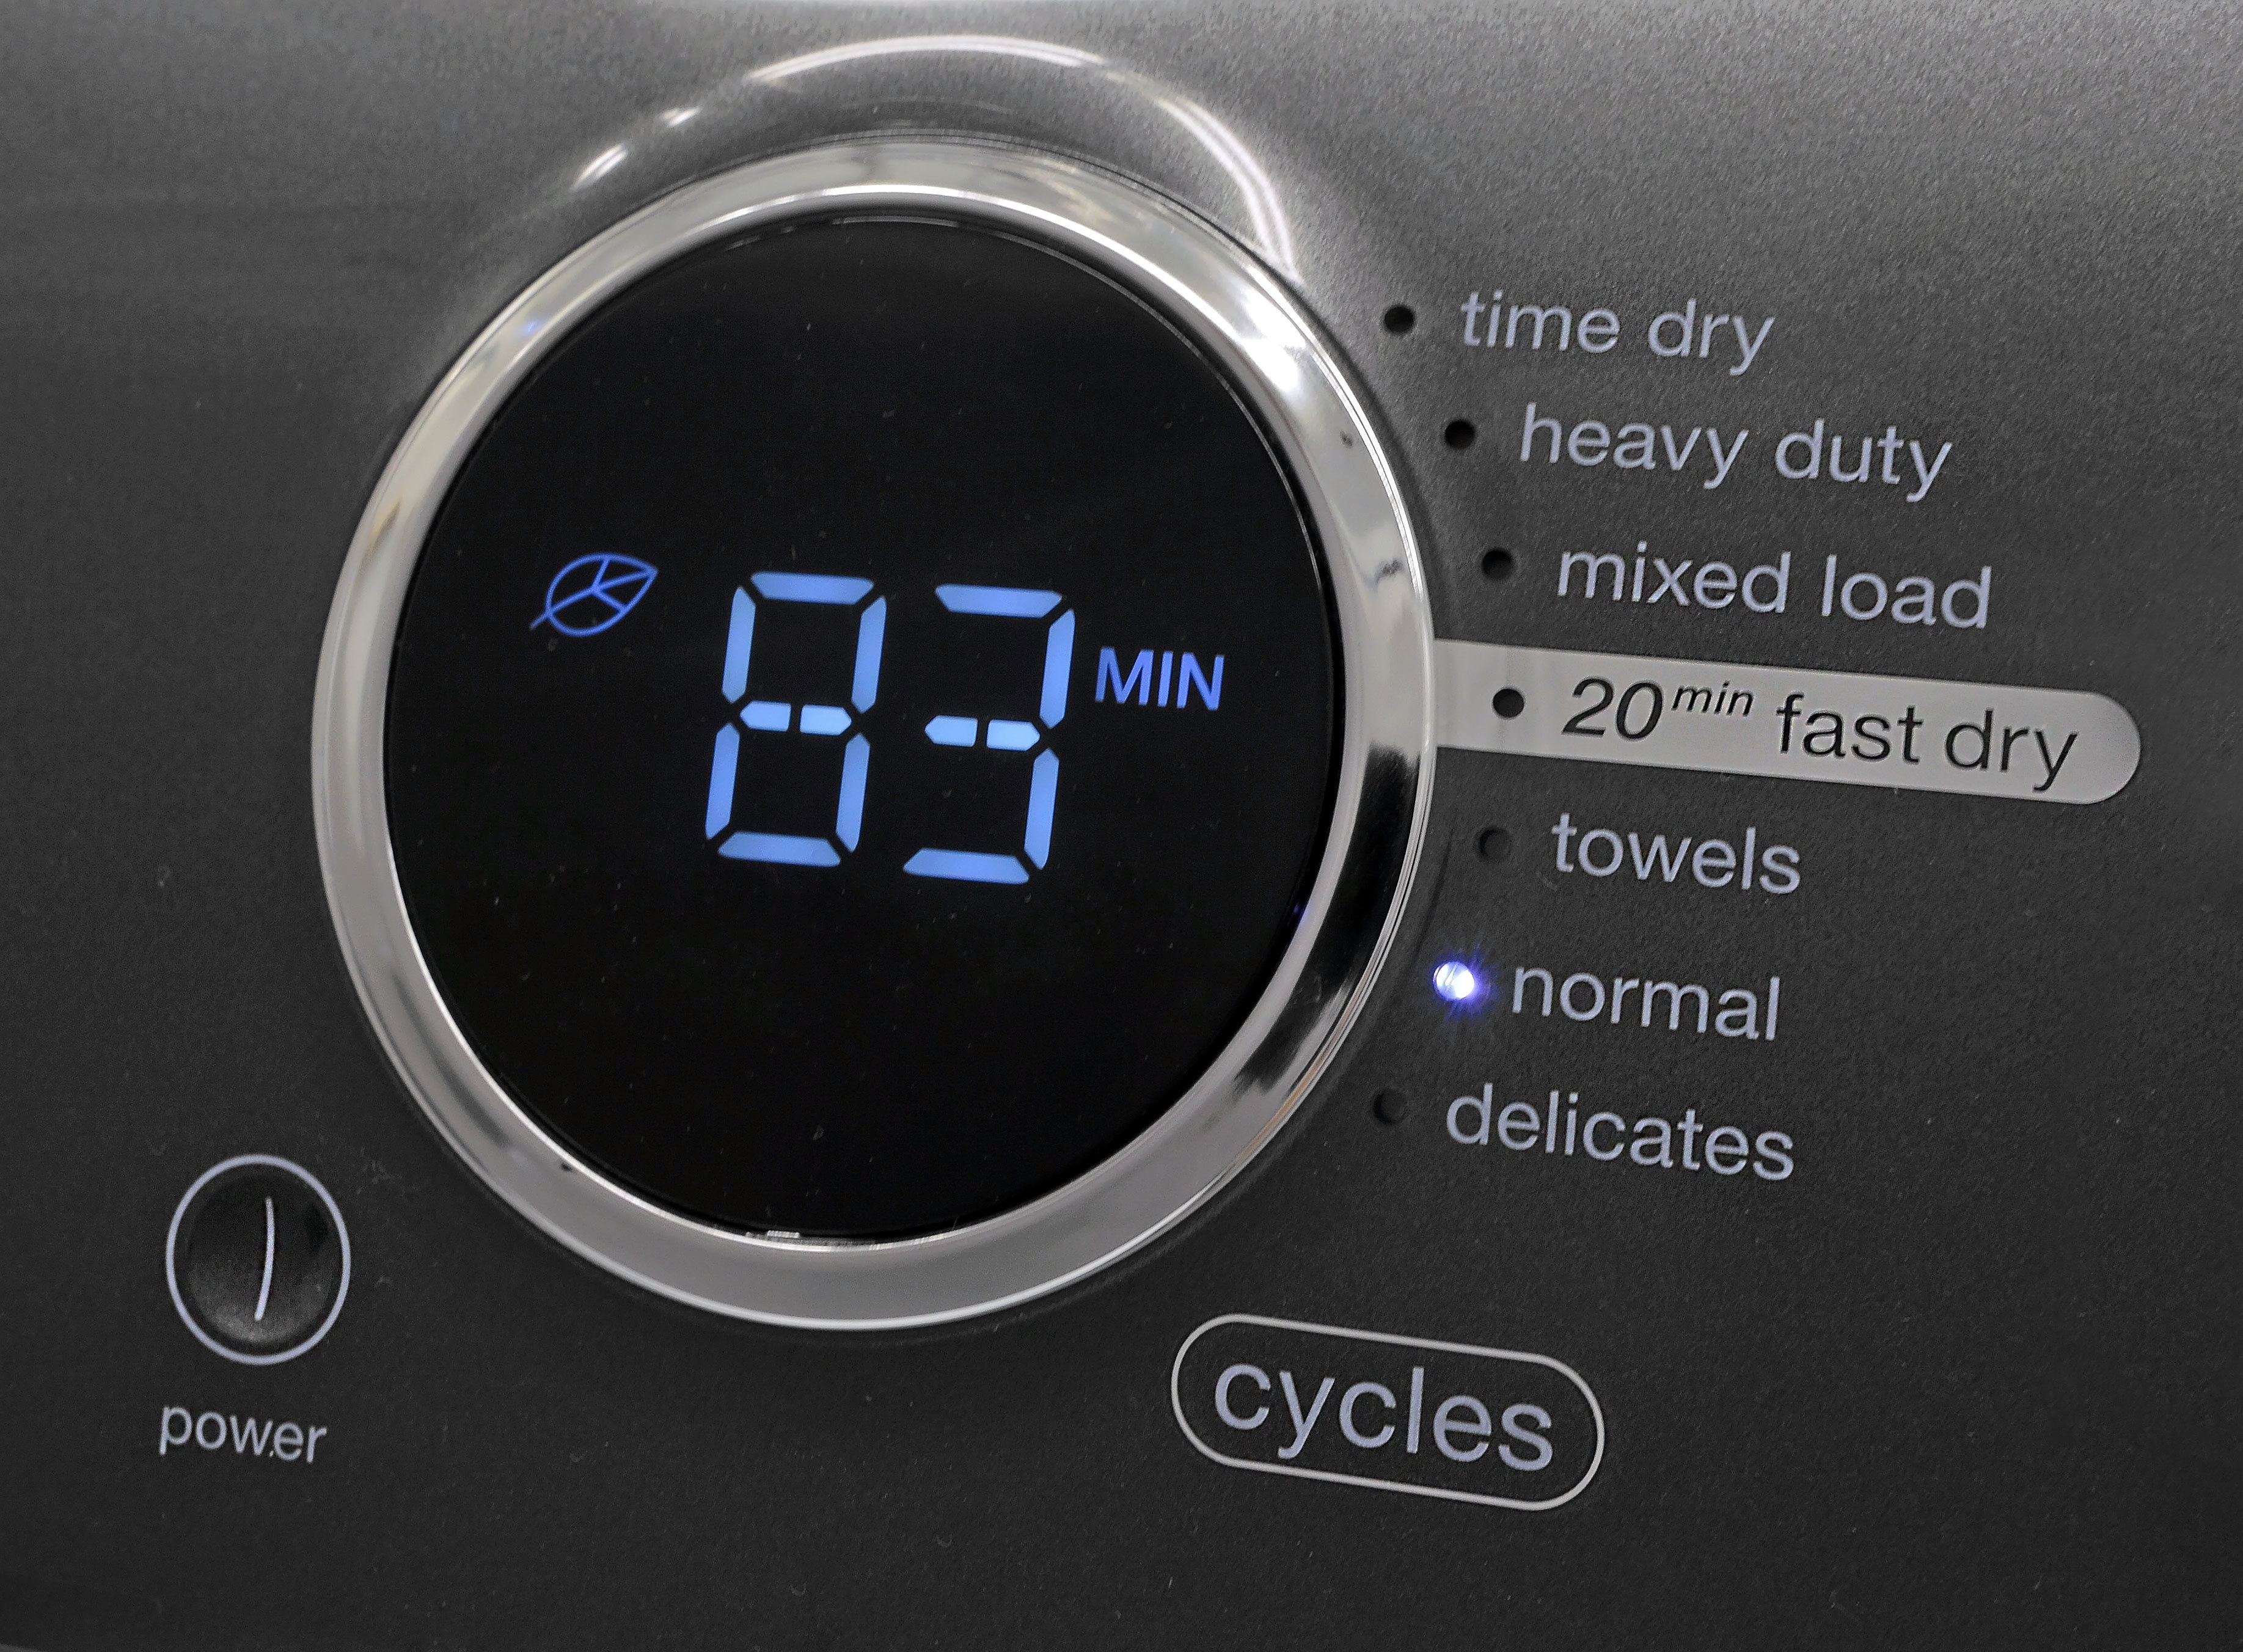 You have to push a button to move through the Electrolux EFME417SIW's cycle list—an irritation, but not a deal breaker necessarily.